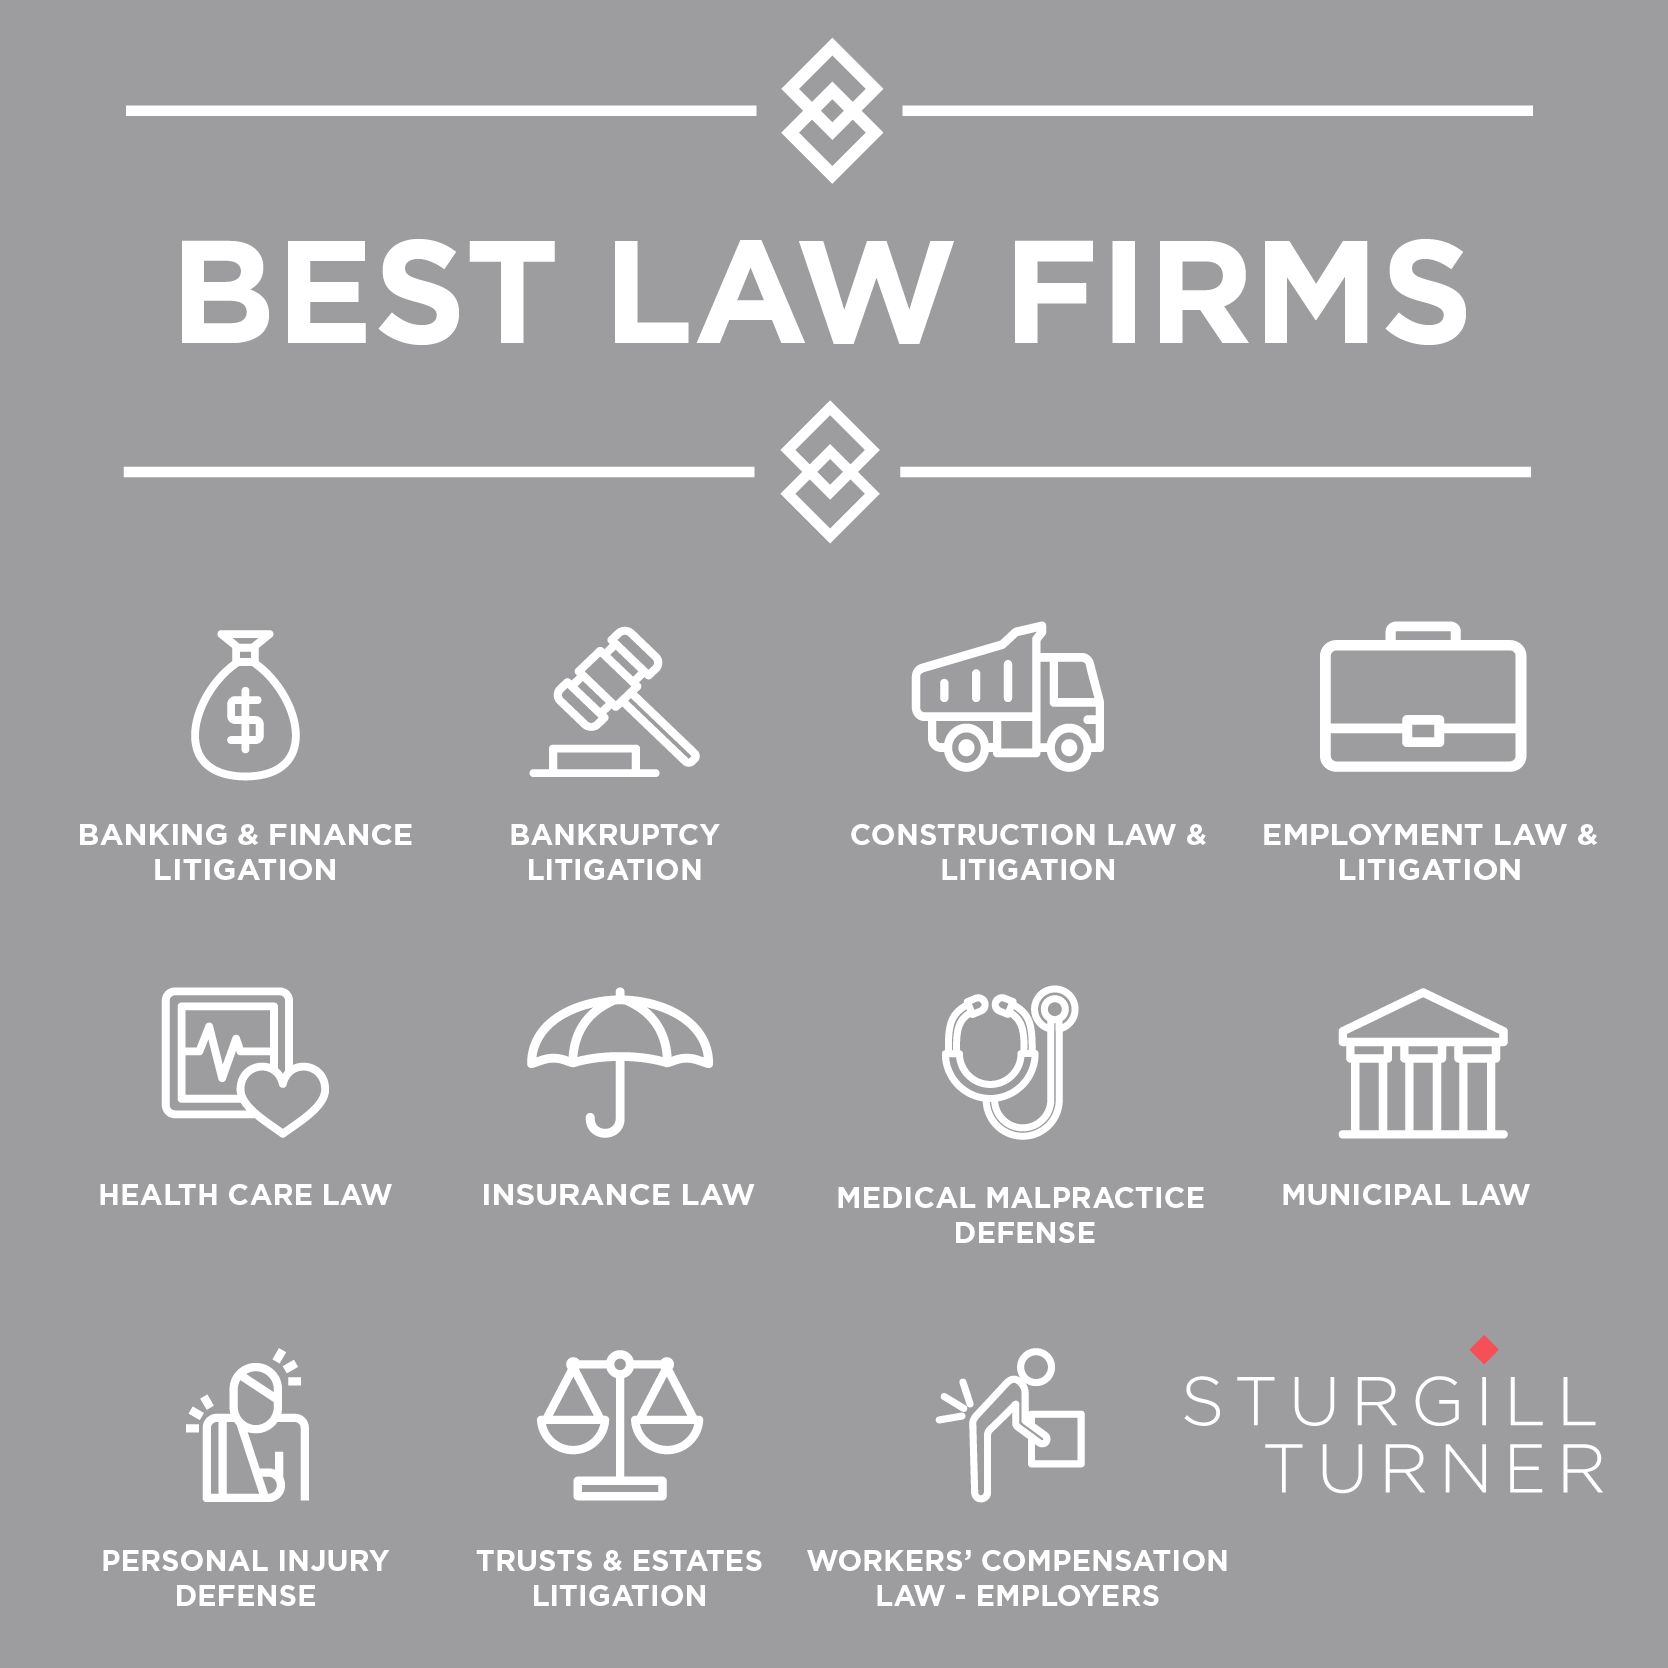 best law firms 2019-01.png